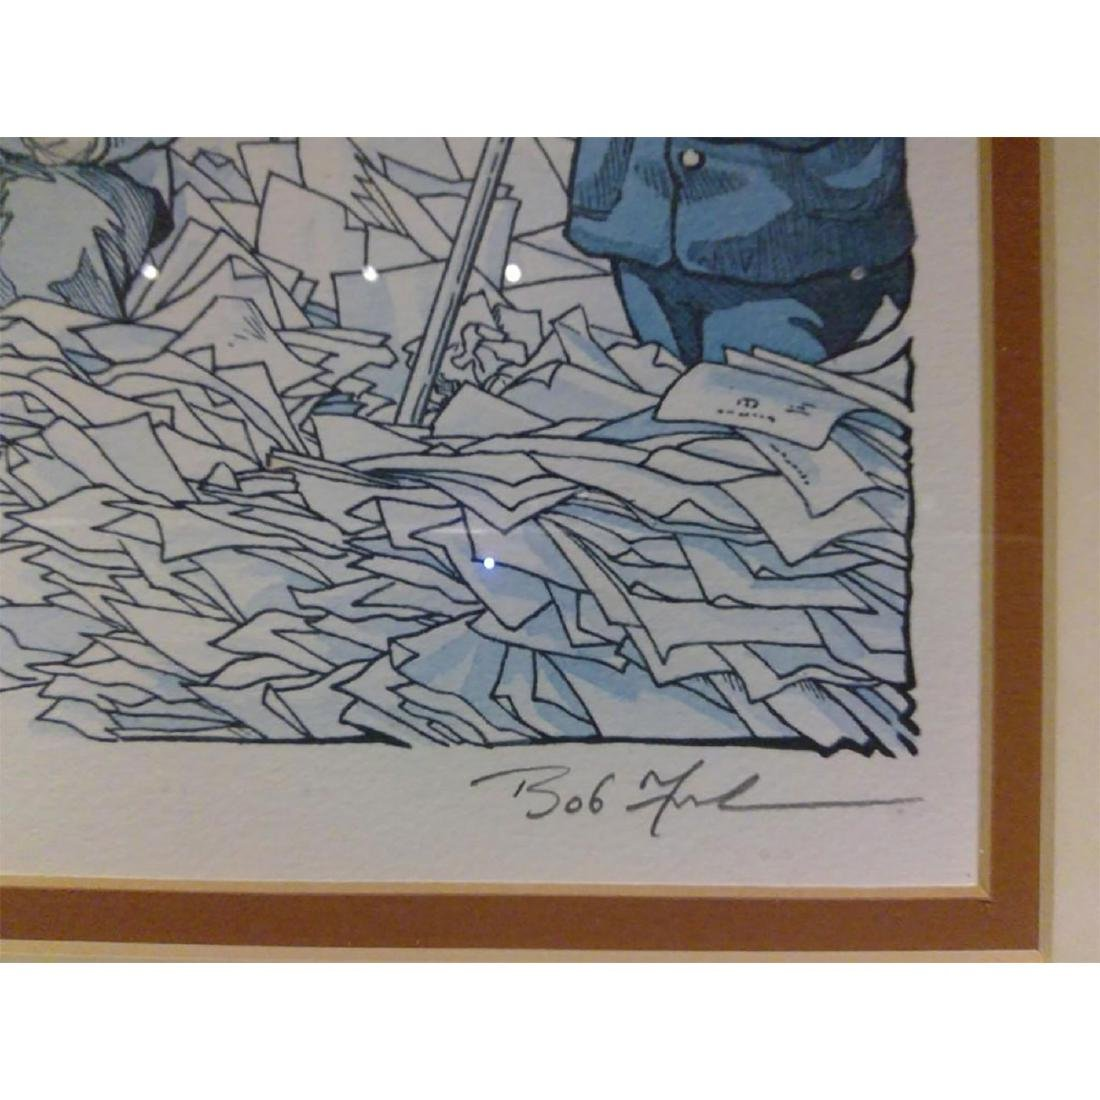 SET OF 2 SIGNED BOB FARNDON LIMITED EDITION LITHOGRAPHS - 8